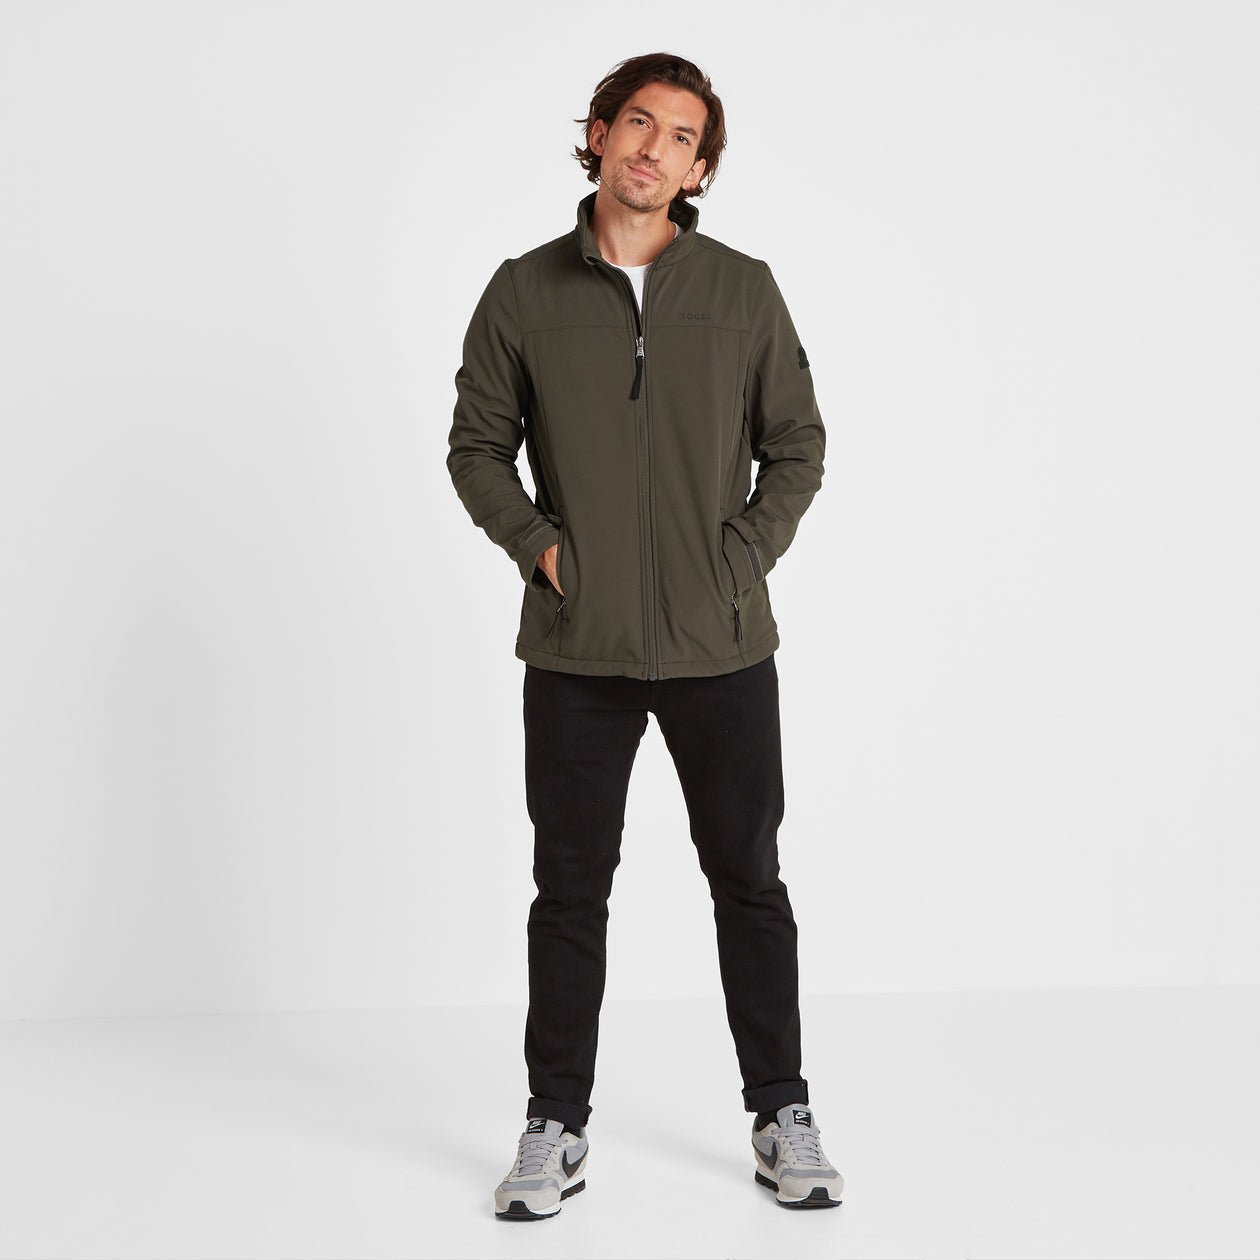 Feizor Mens Softshell Jacket - Dark Khaki image 4